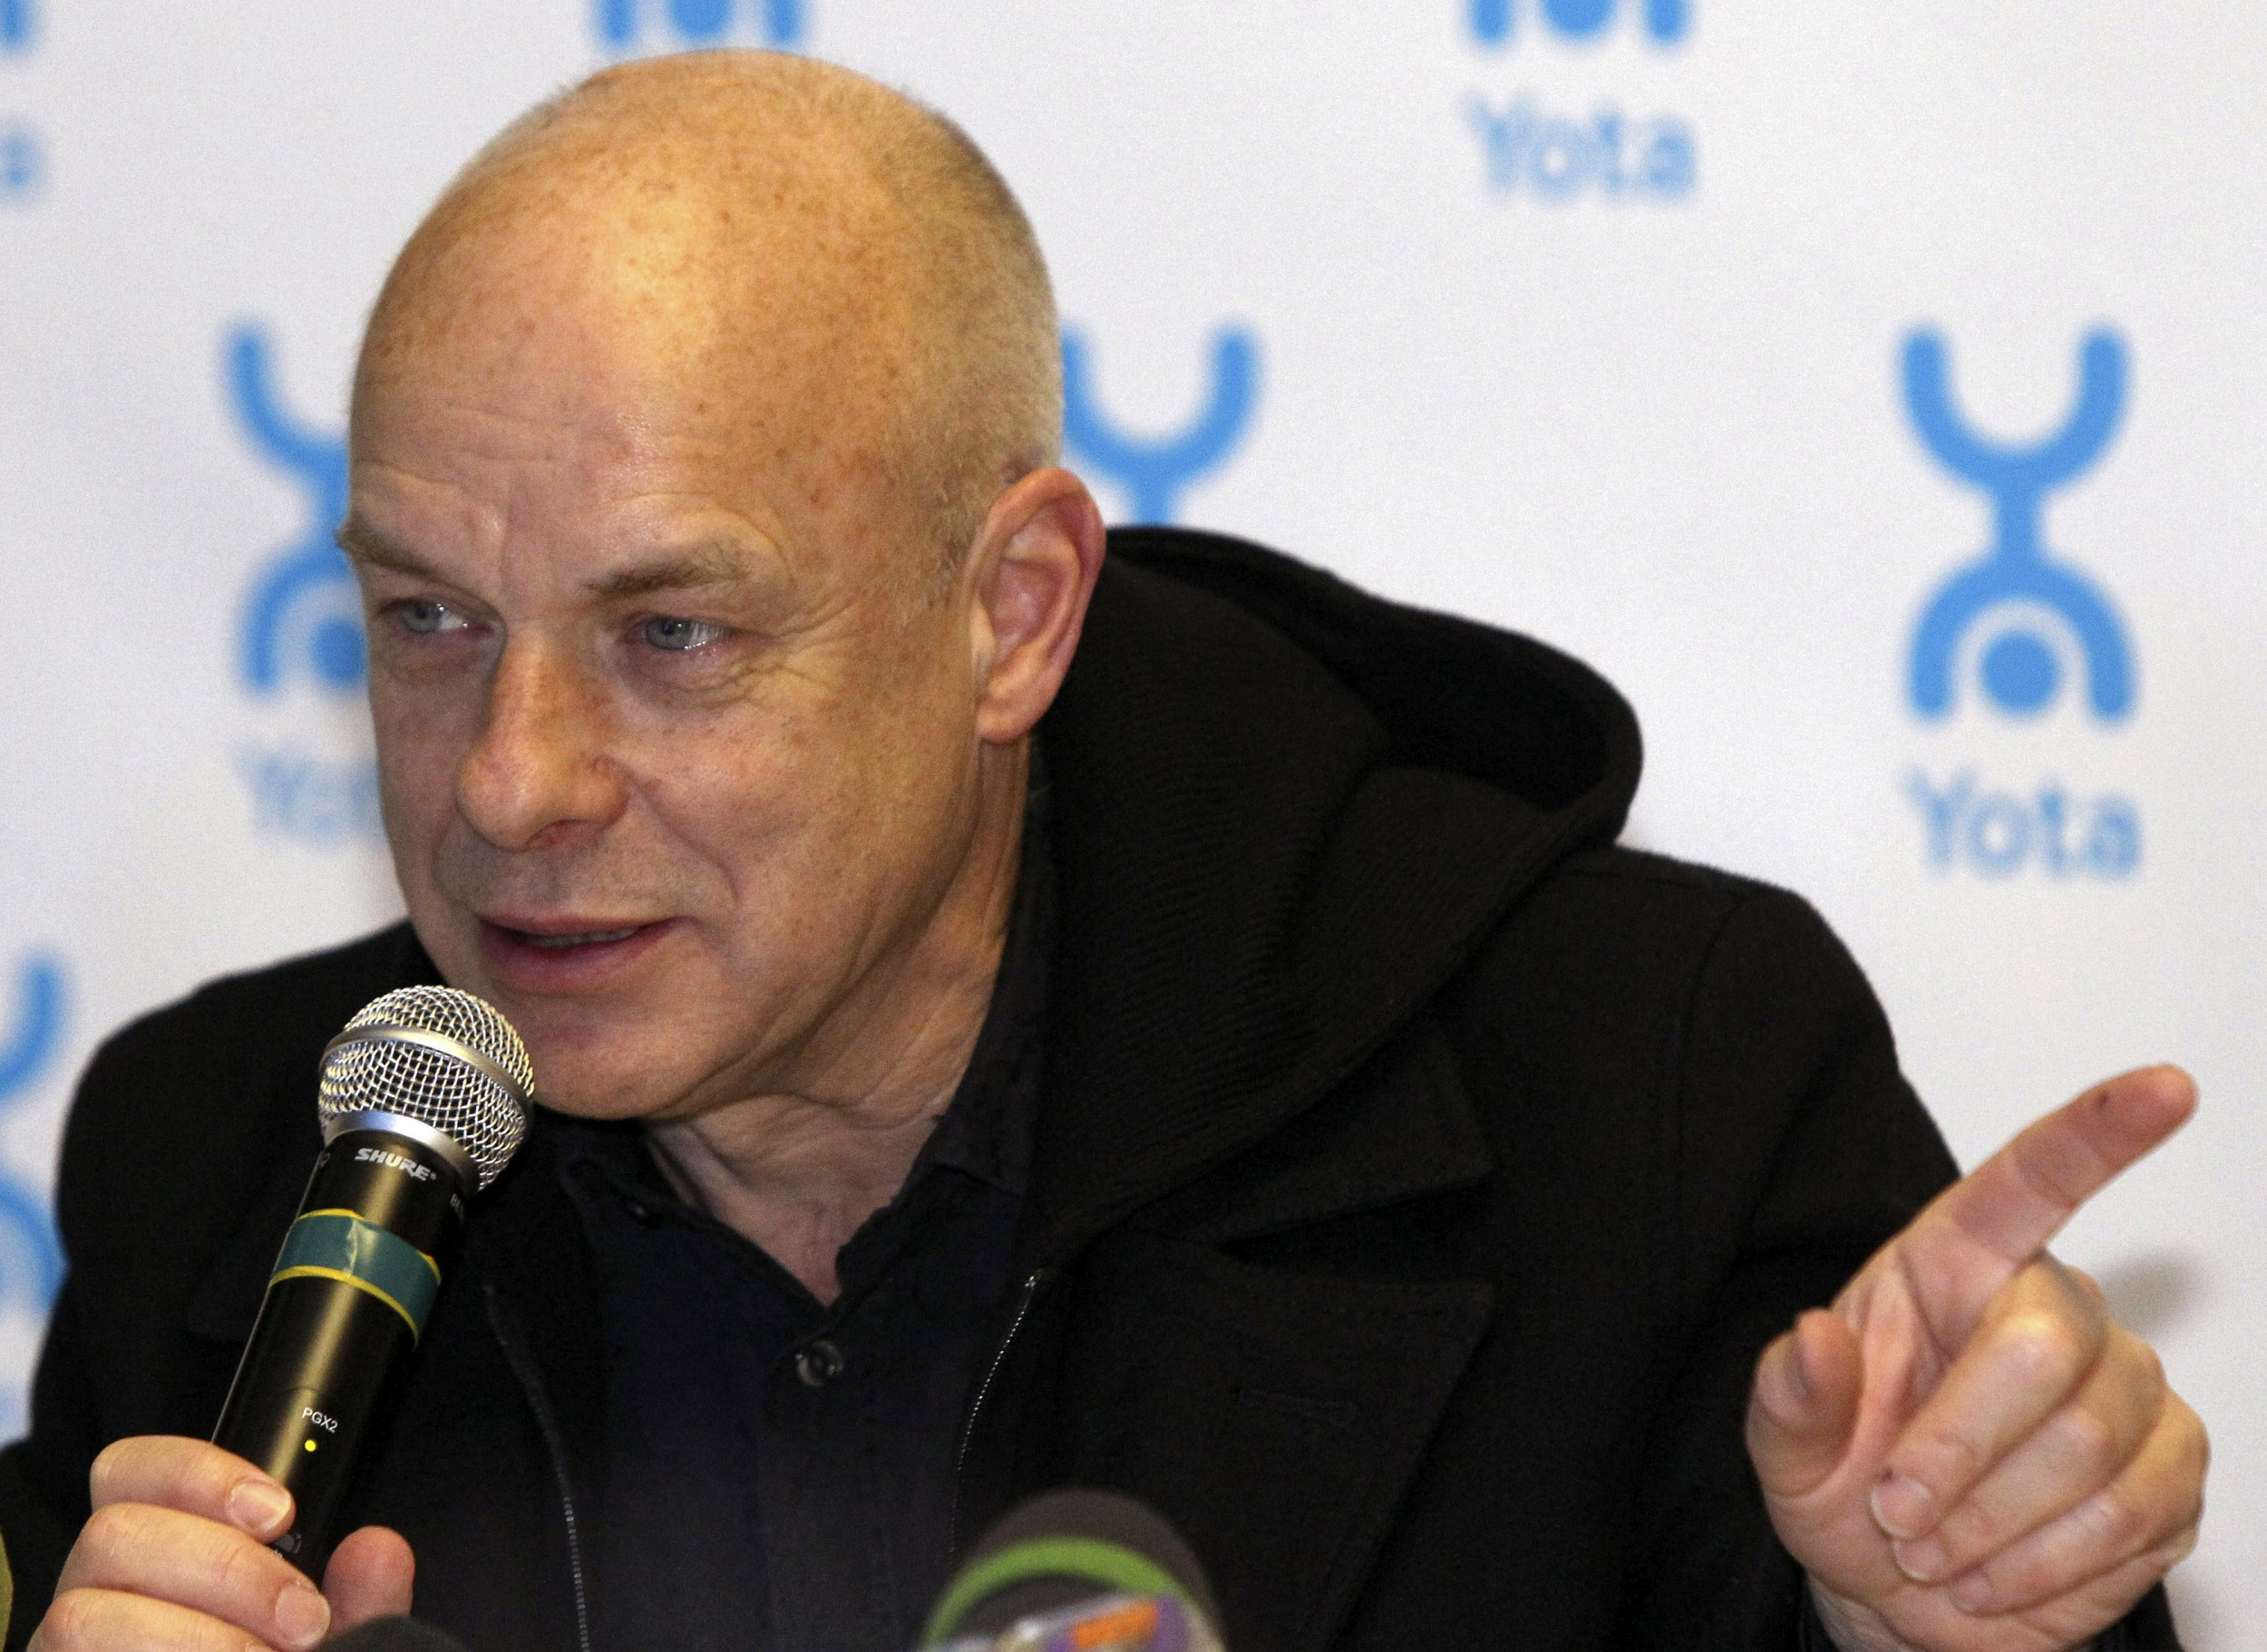 Music producer Brian Eno answers questions during a news conference in St. Petersburg November 29, 2010.